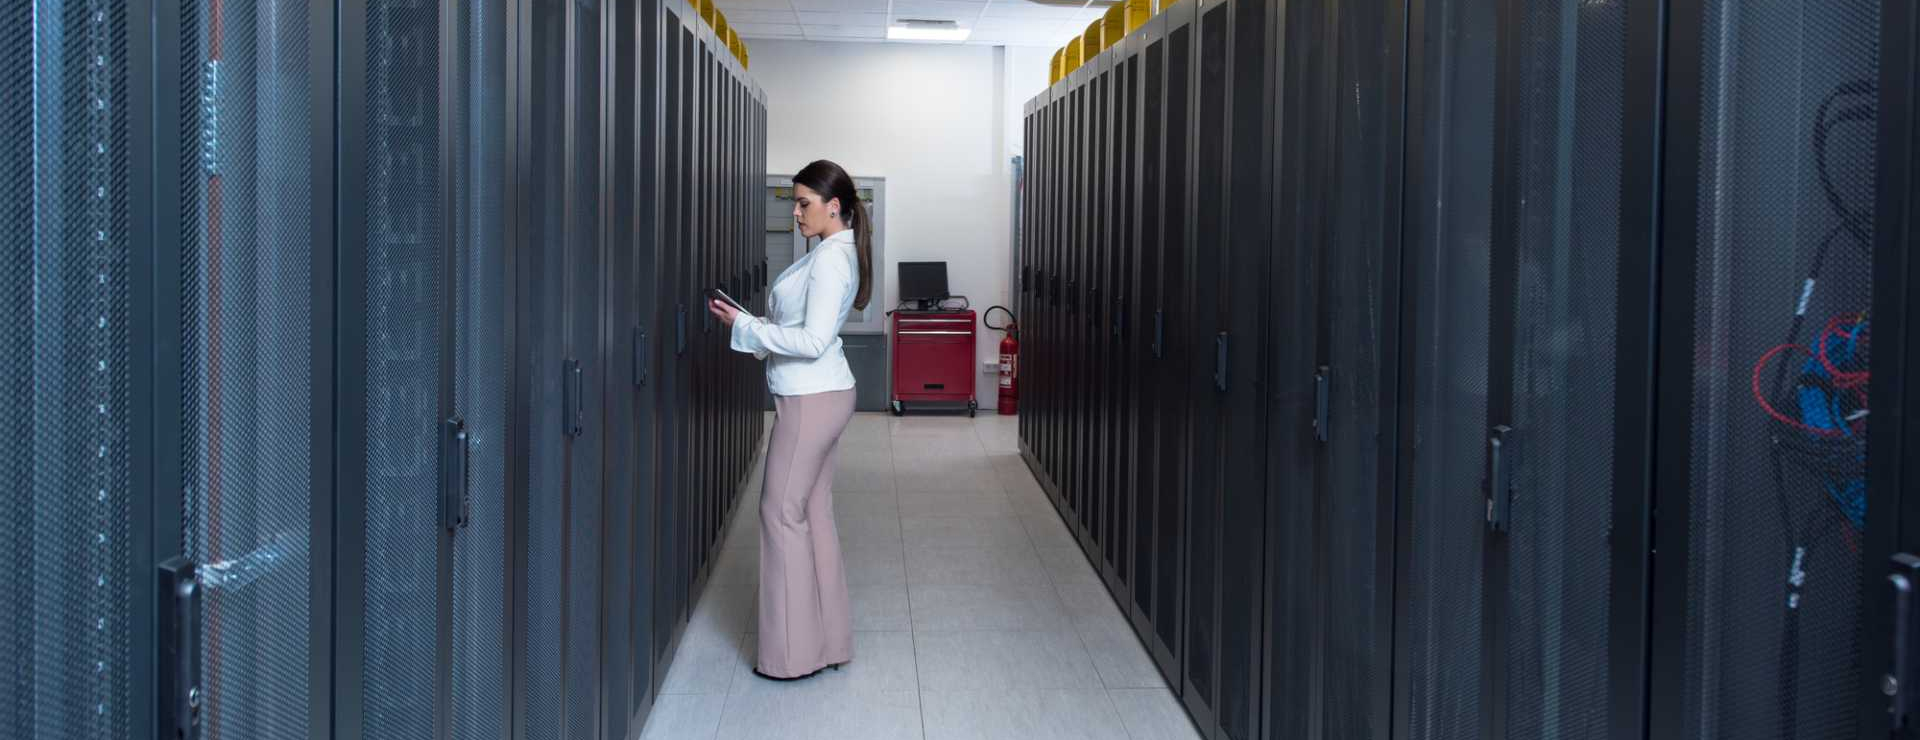 CROP - Female engineer working on a tablet computer in server room– image courtesy of Depositphotos.